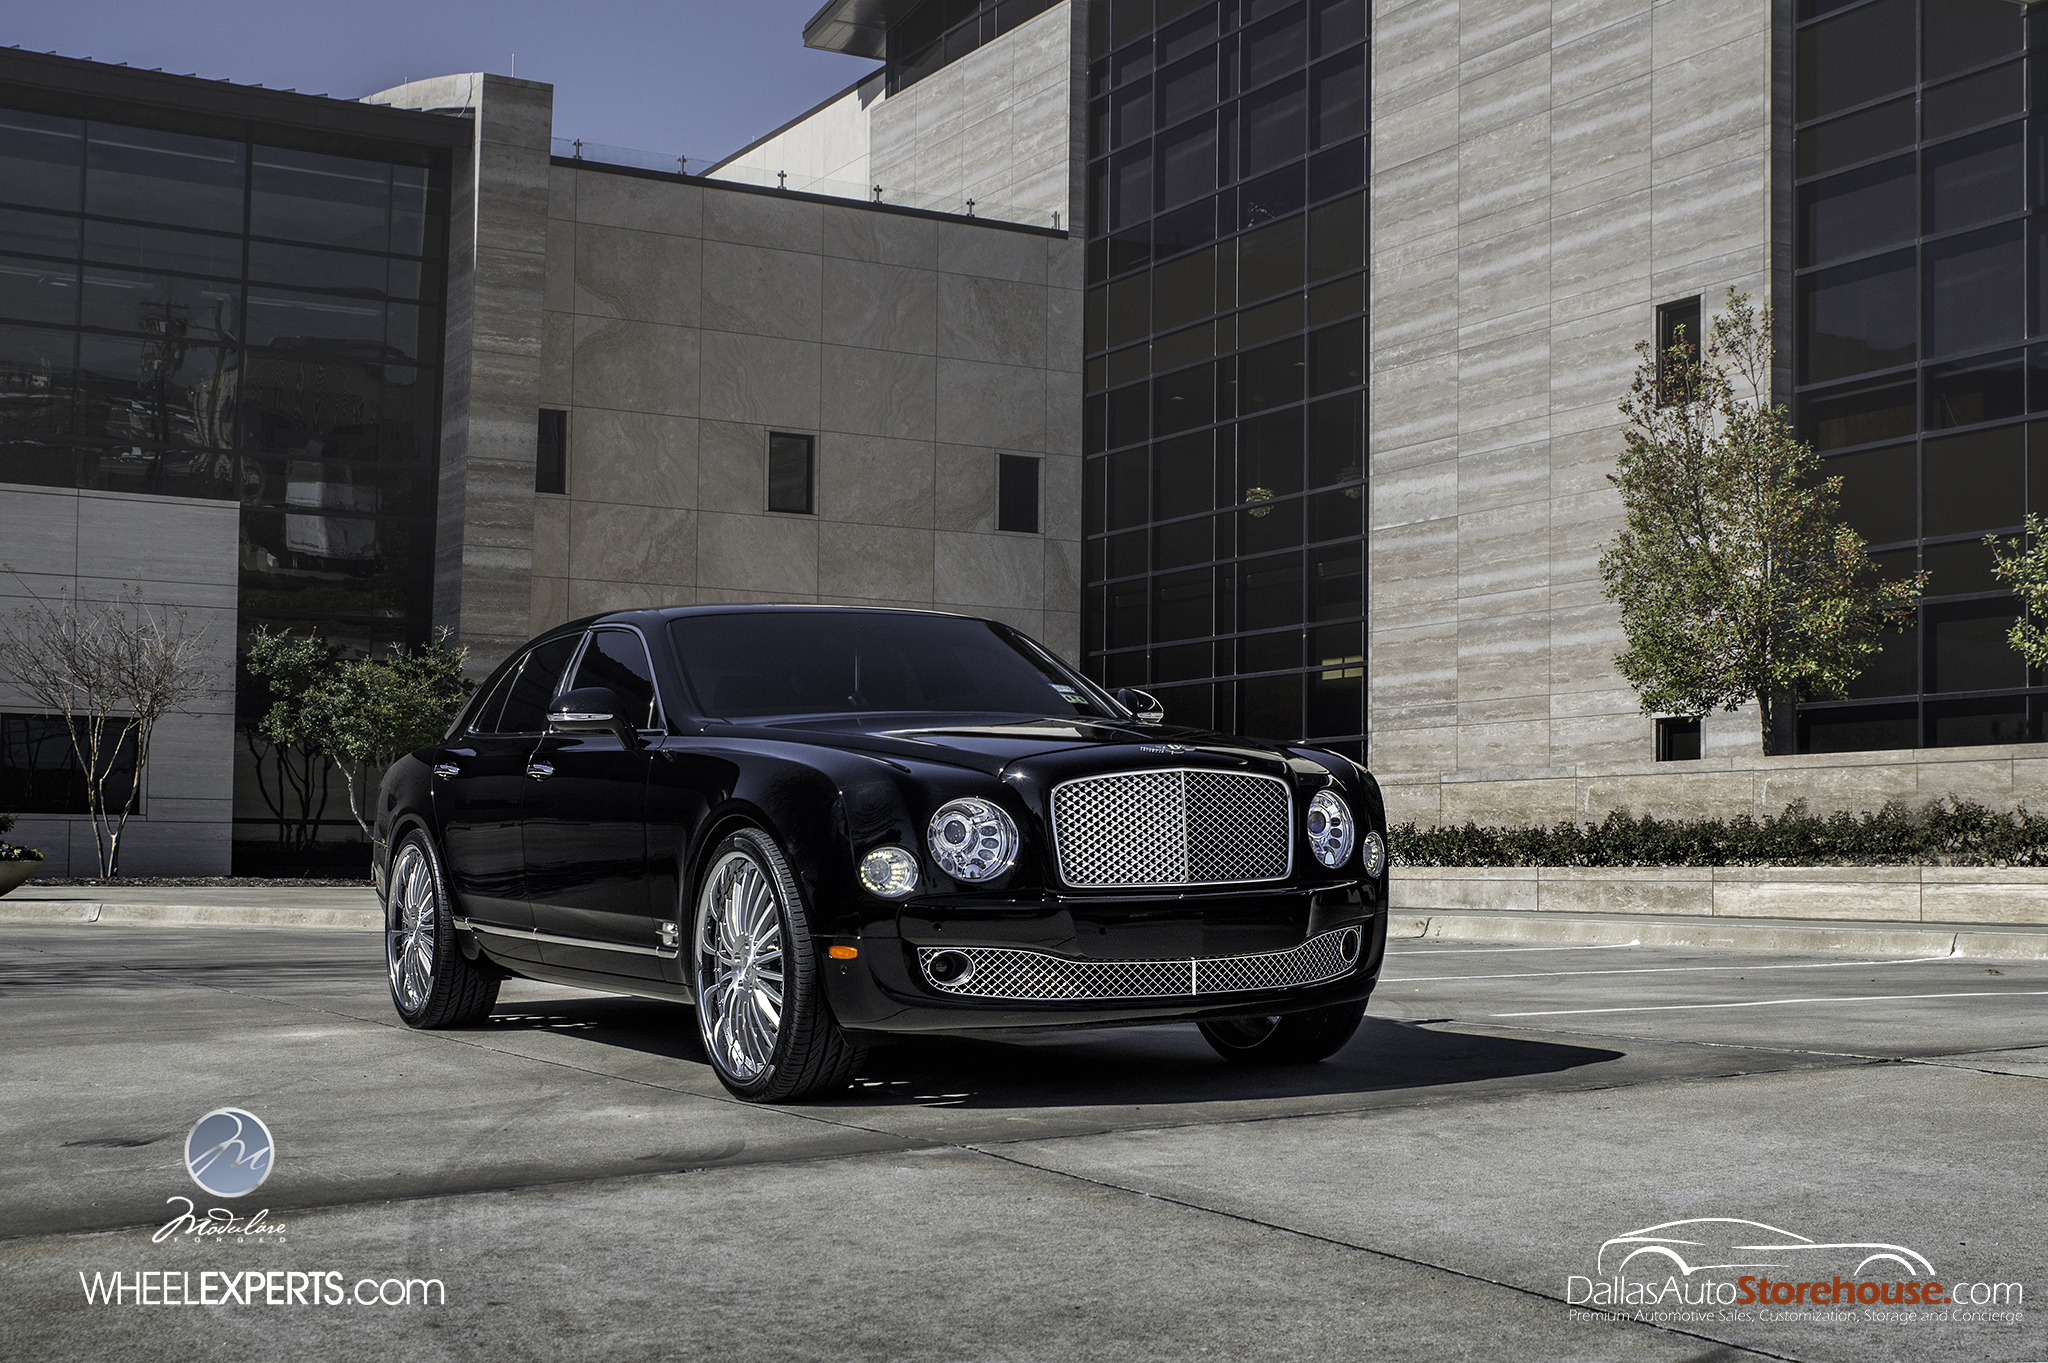 photo 6 Bentley Mulsanne Wheels Modulare M20 24x10.0, ET , tire size 285/30 R24. x ET